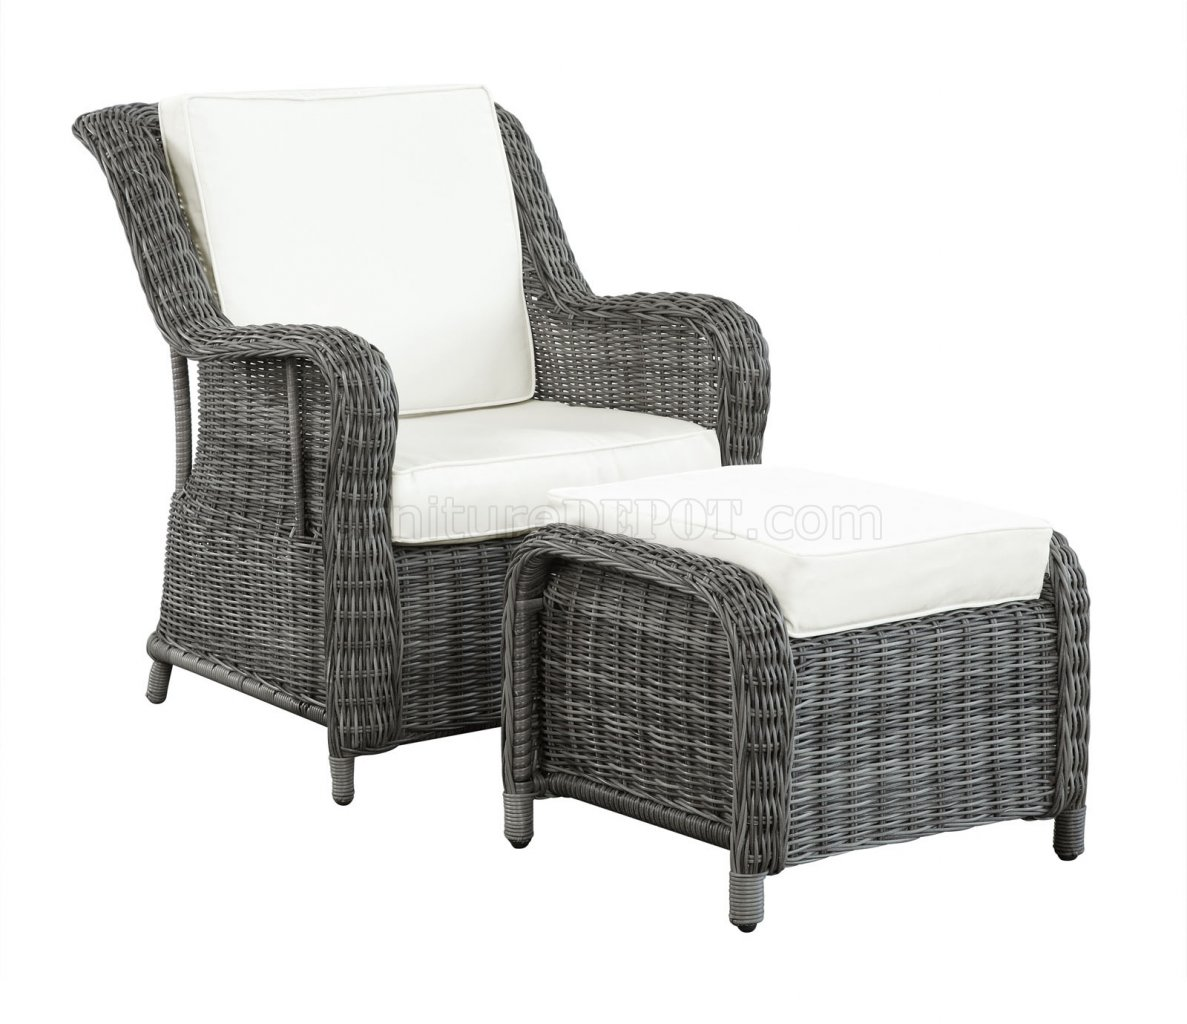 outdoor chair and ottoman slipcover dining chairs du jour patio in gray white by modway